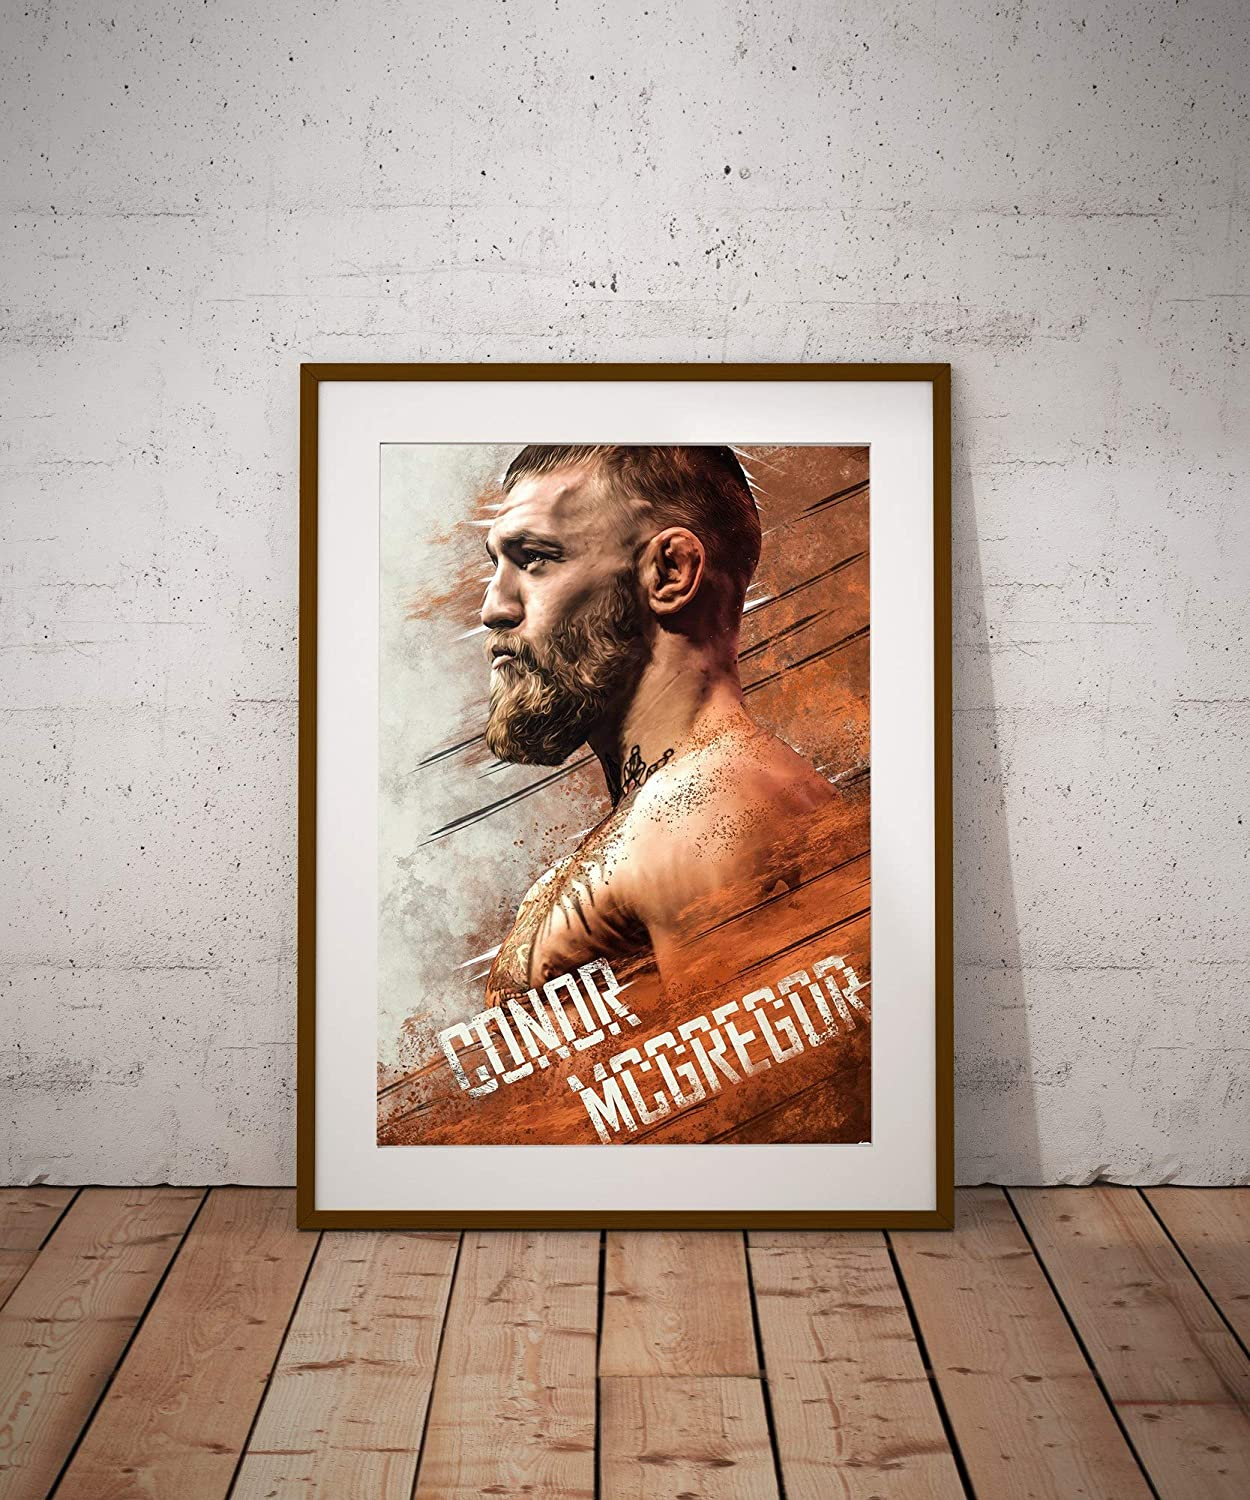 Boxer Conor McGregor Poster Professional Boxing Poster Unframed Poster Print Art Poster Wall Art Print Gift Poster Canvas Printing Wall Decor Size - 11x17 18x24 24x32 24x36 (A4-8.5x11)